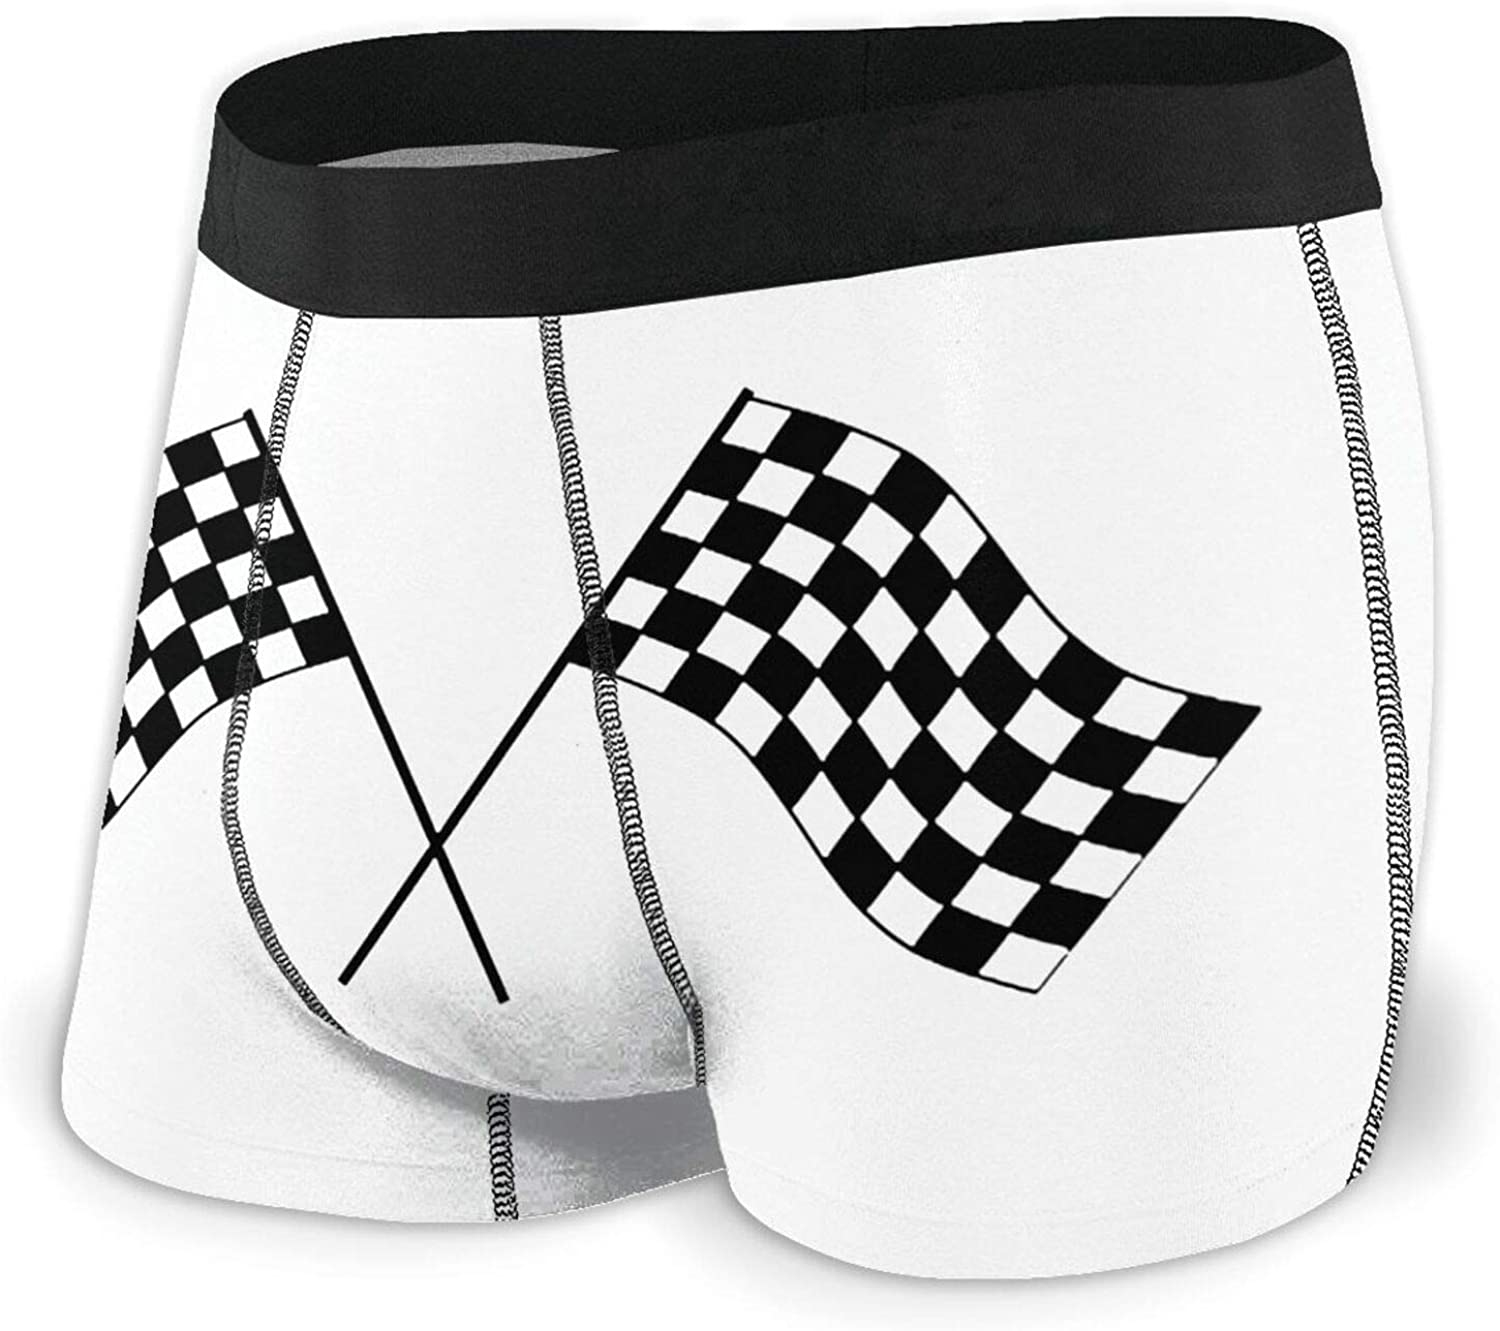 In stock TZT Checkered Flags Race Car Flag Men's Boxer Briefs Very popular Breathable